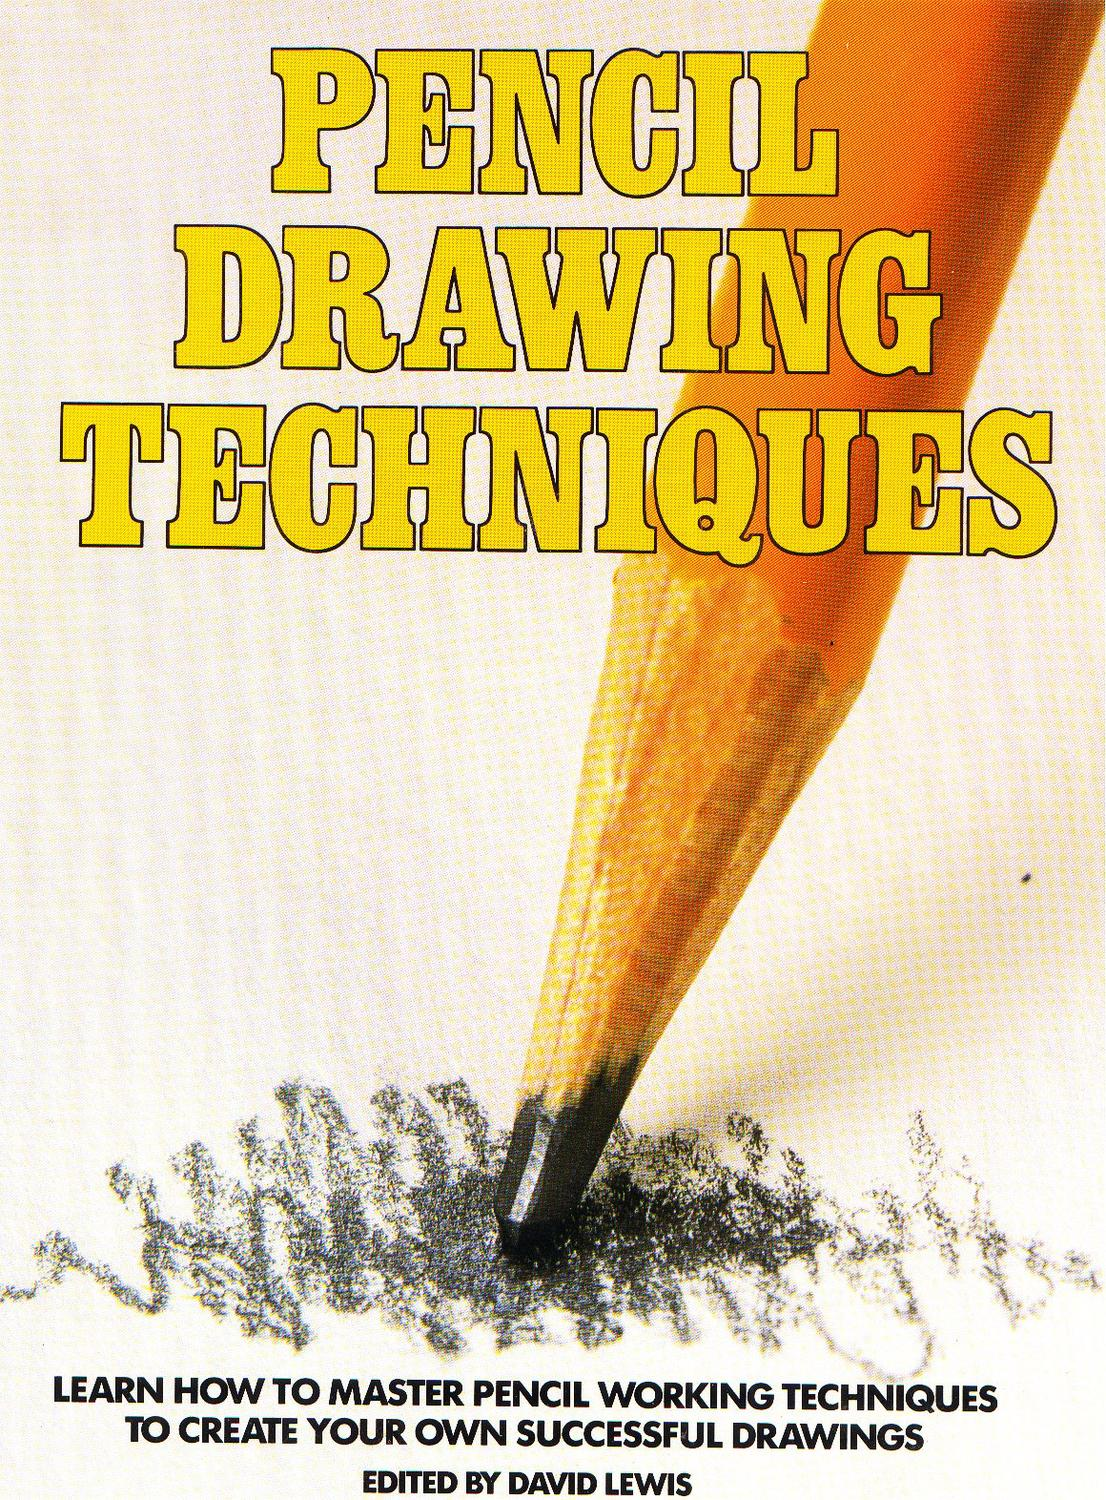 Pencil drawing techniques by david lewis by eric issuu